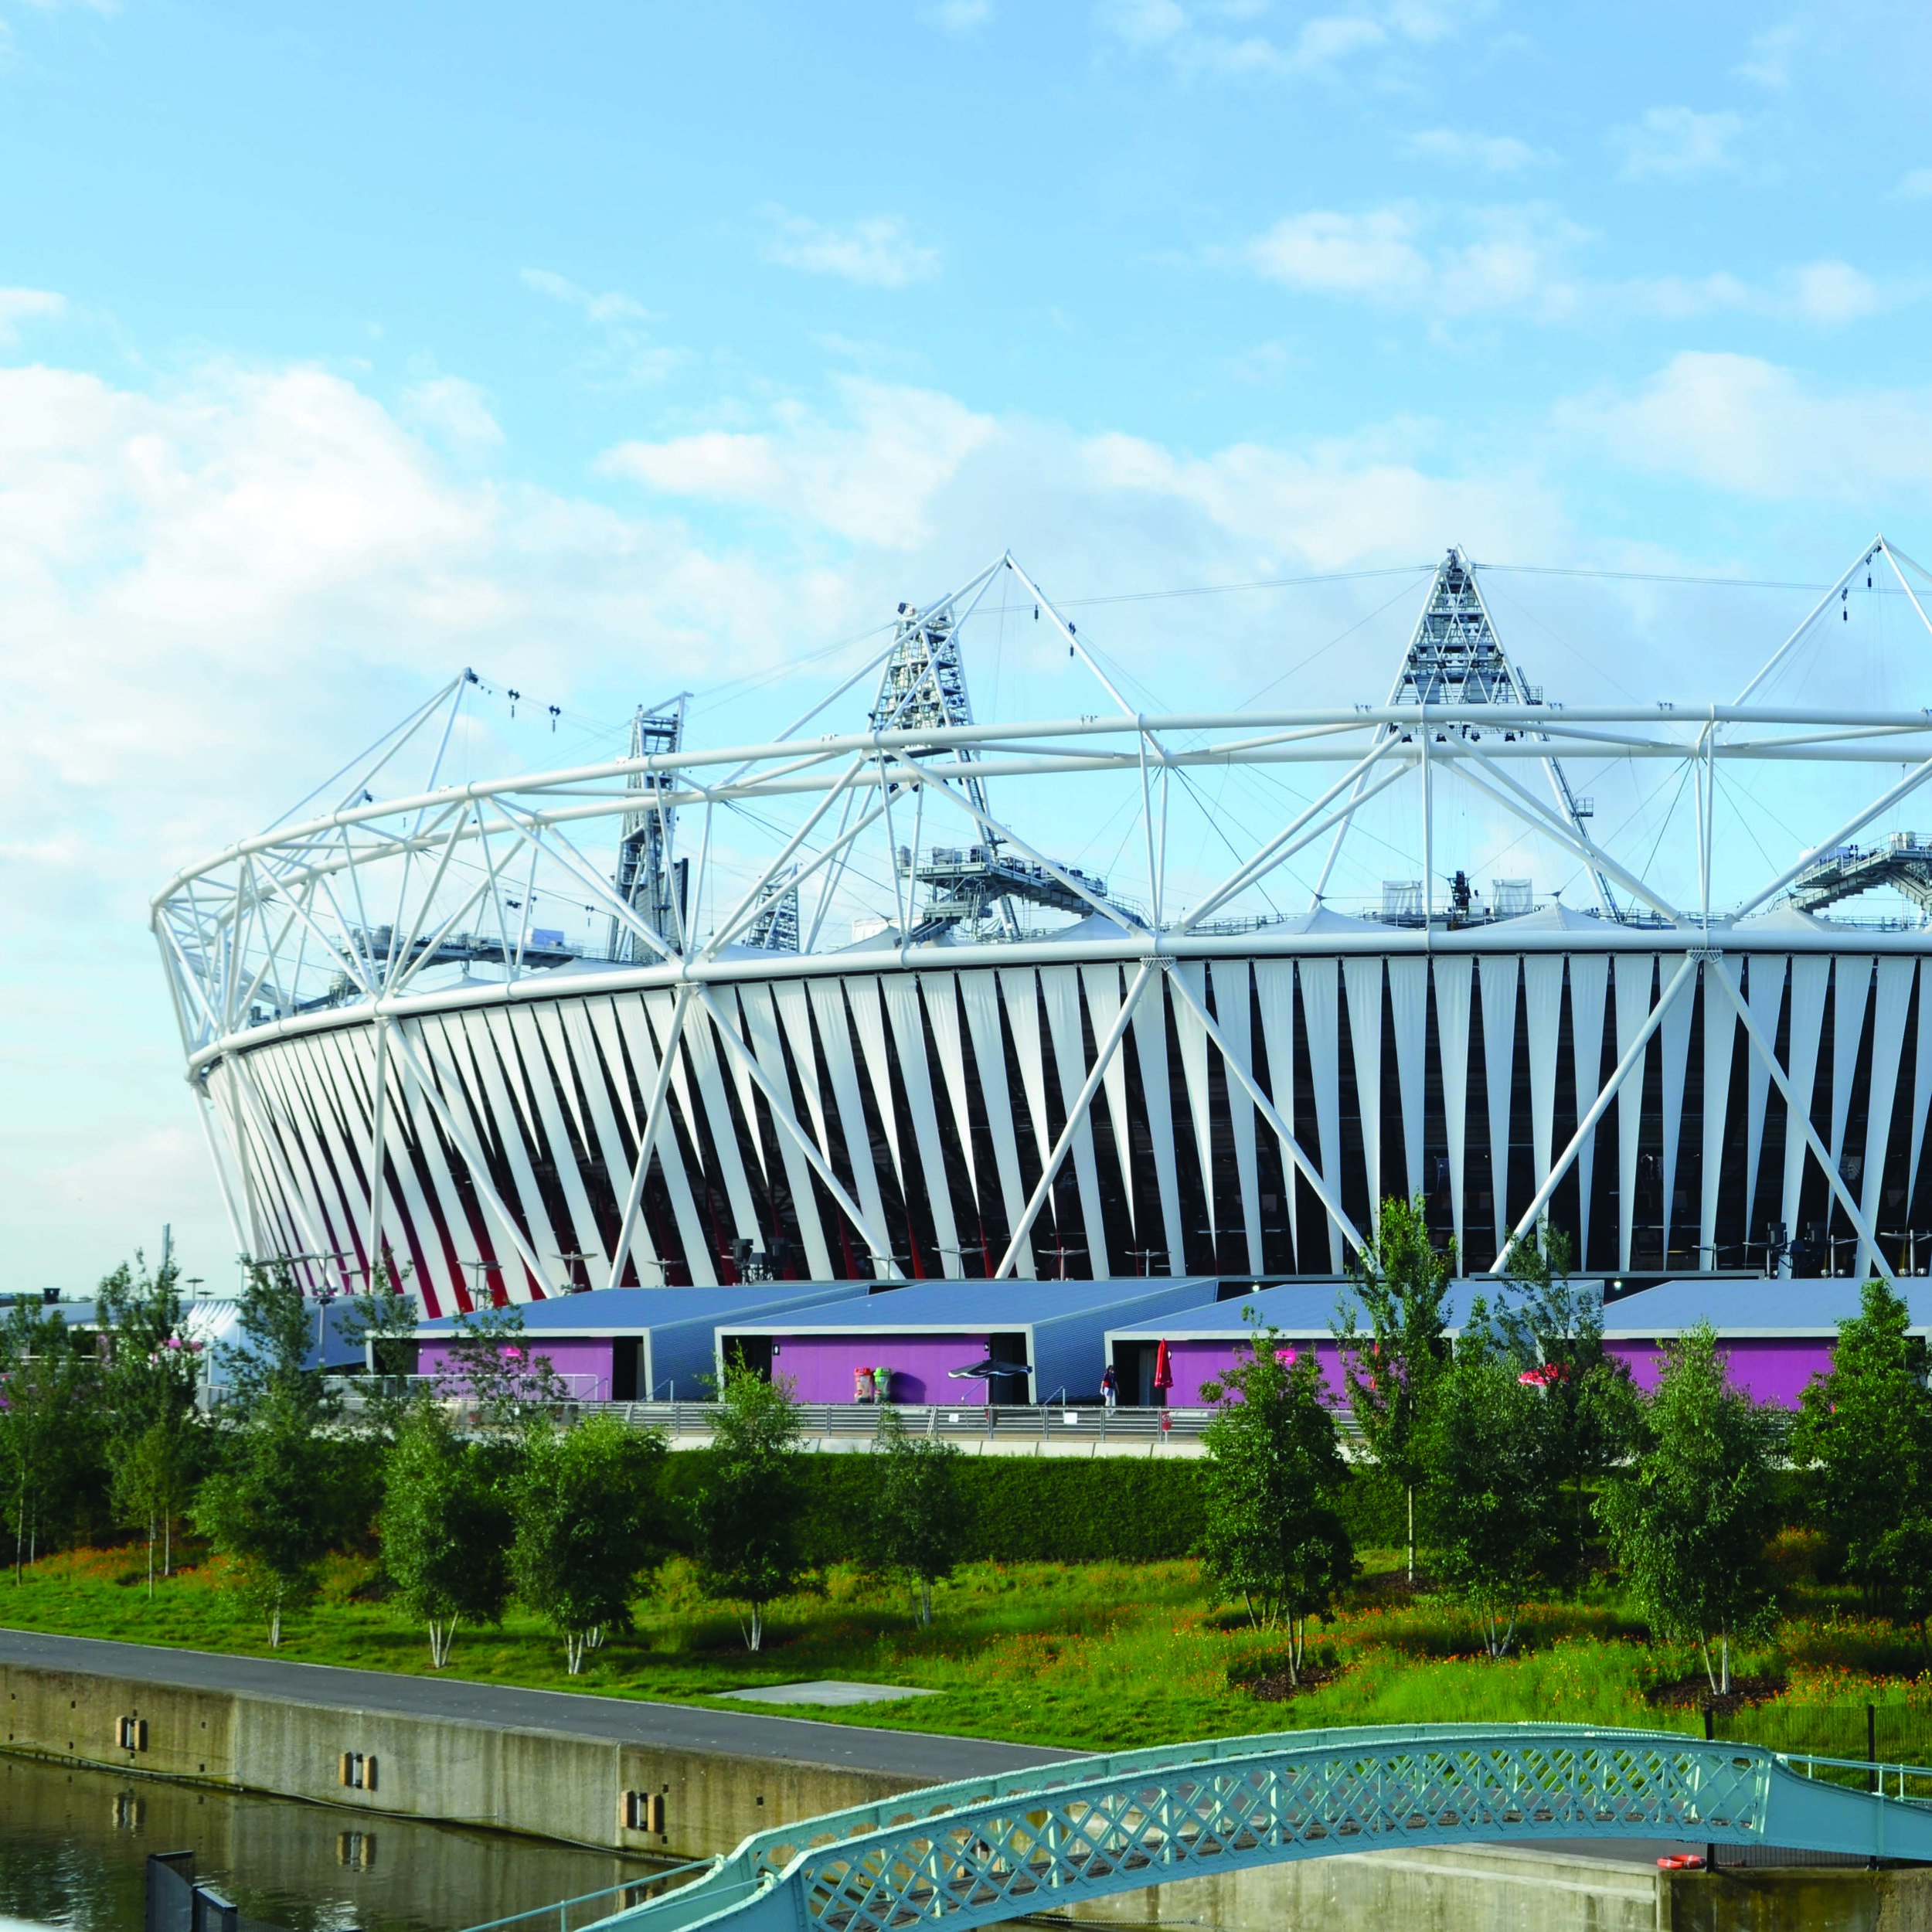 Olympic_Stadium_(London),_3_August_2012.jpg